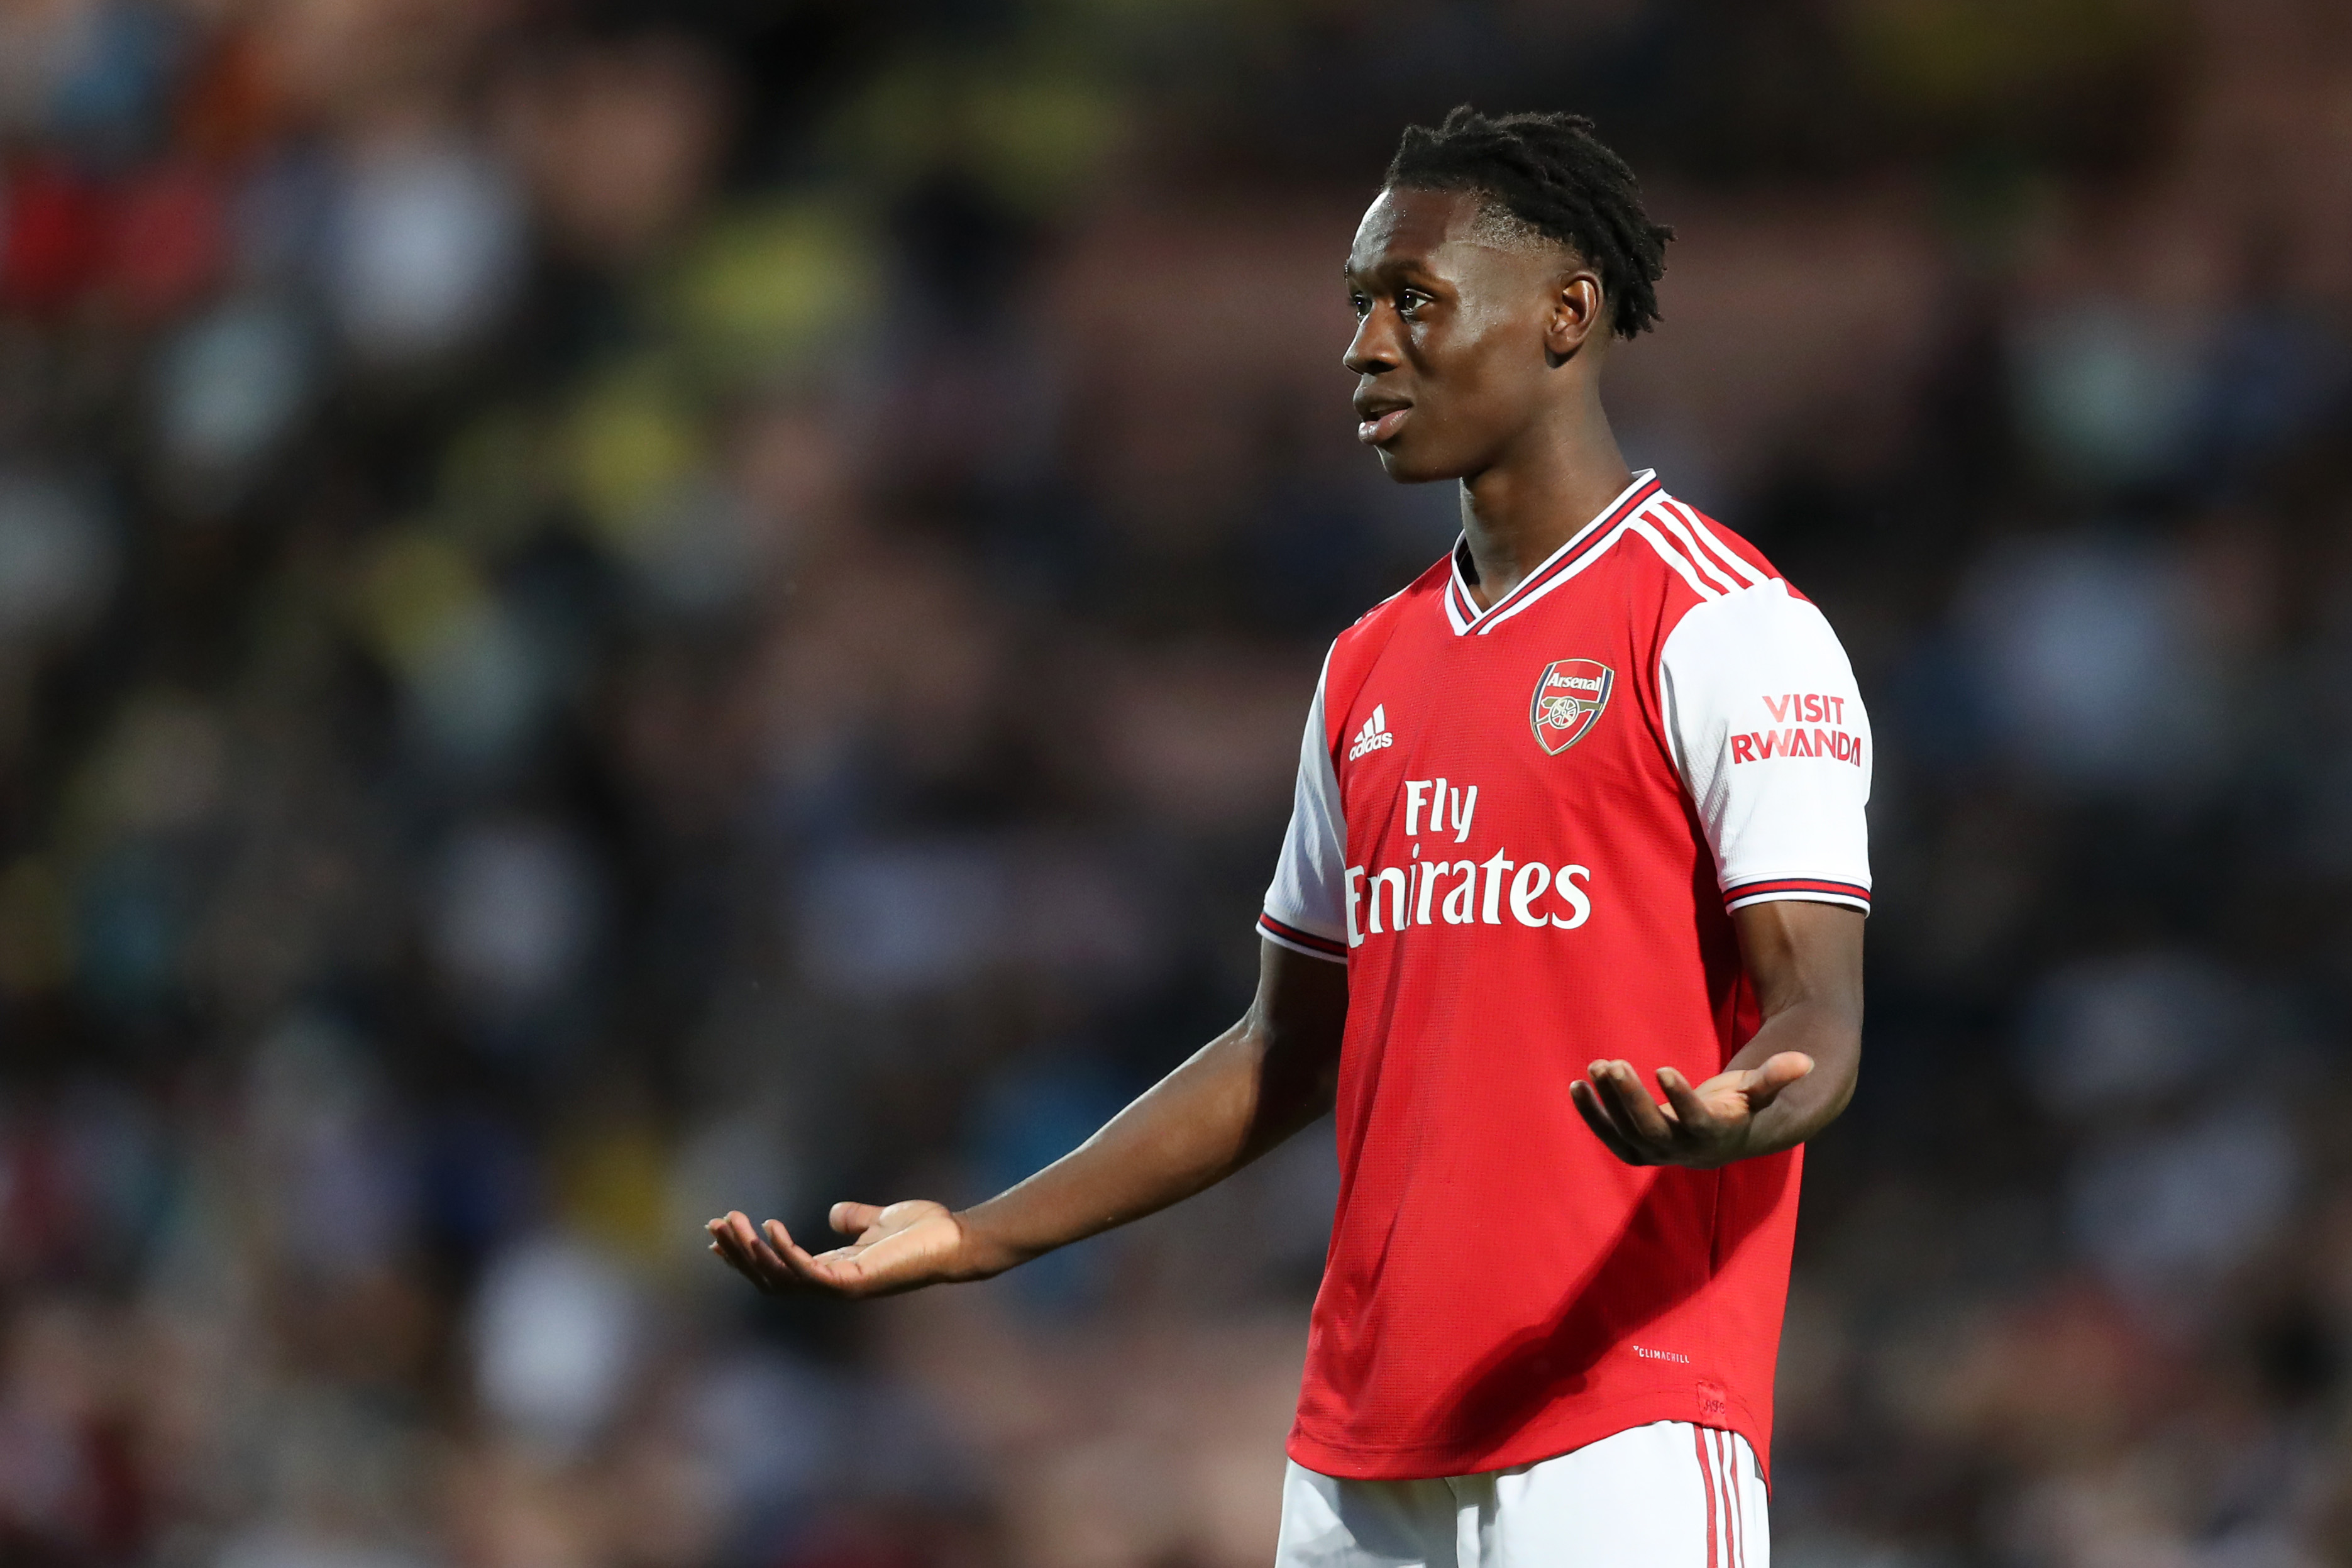 Arsenal have begun talks with Folarin Balogun over a new contract - Is it the right move?